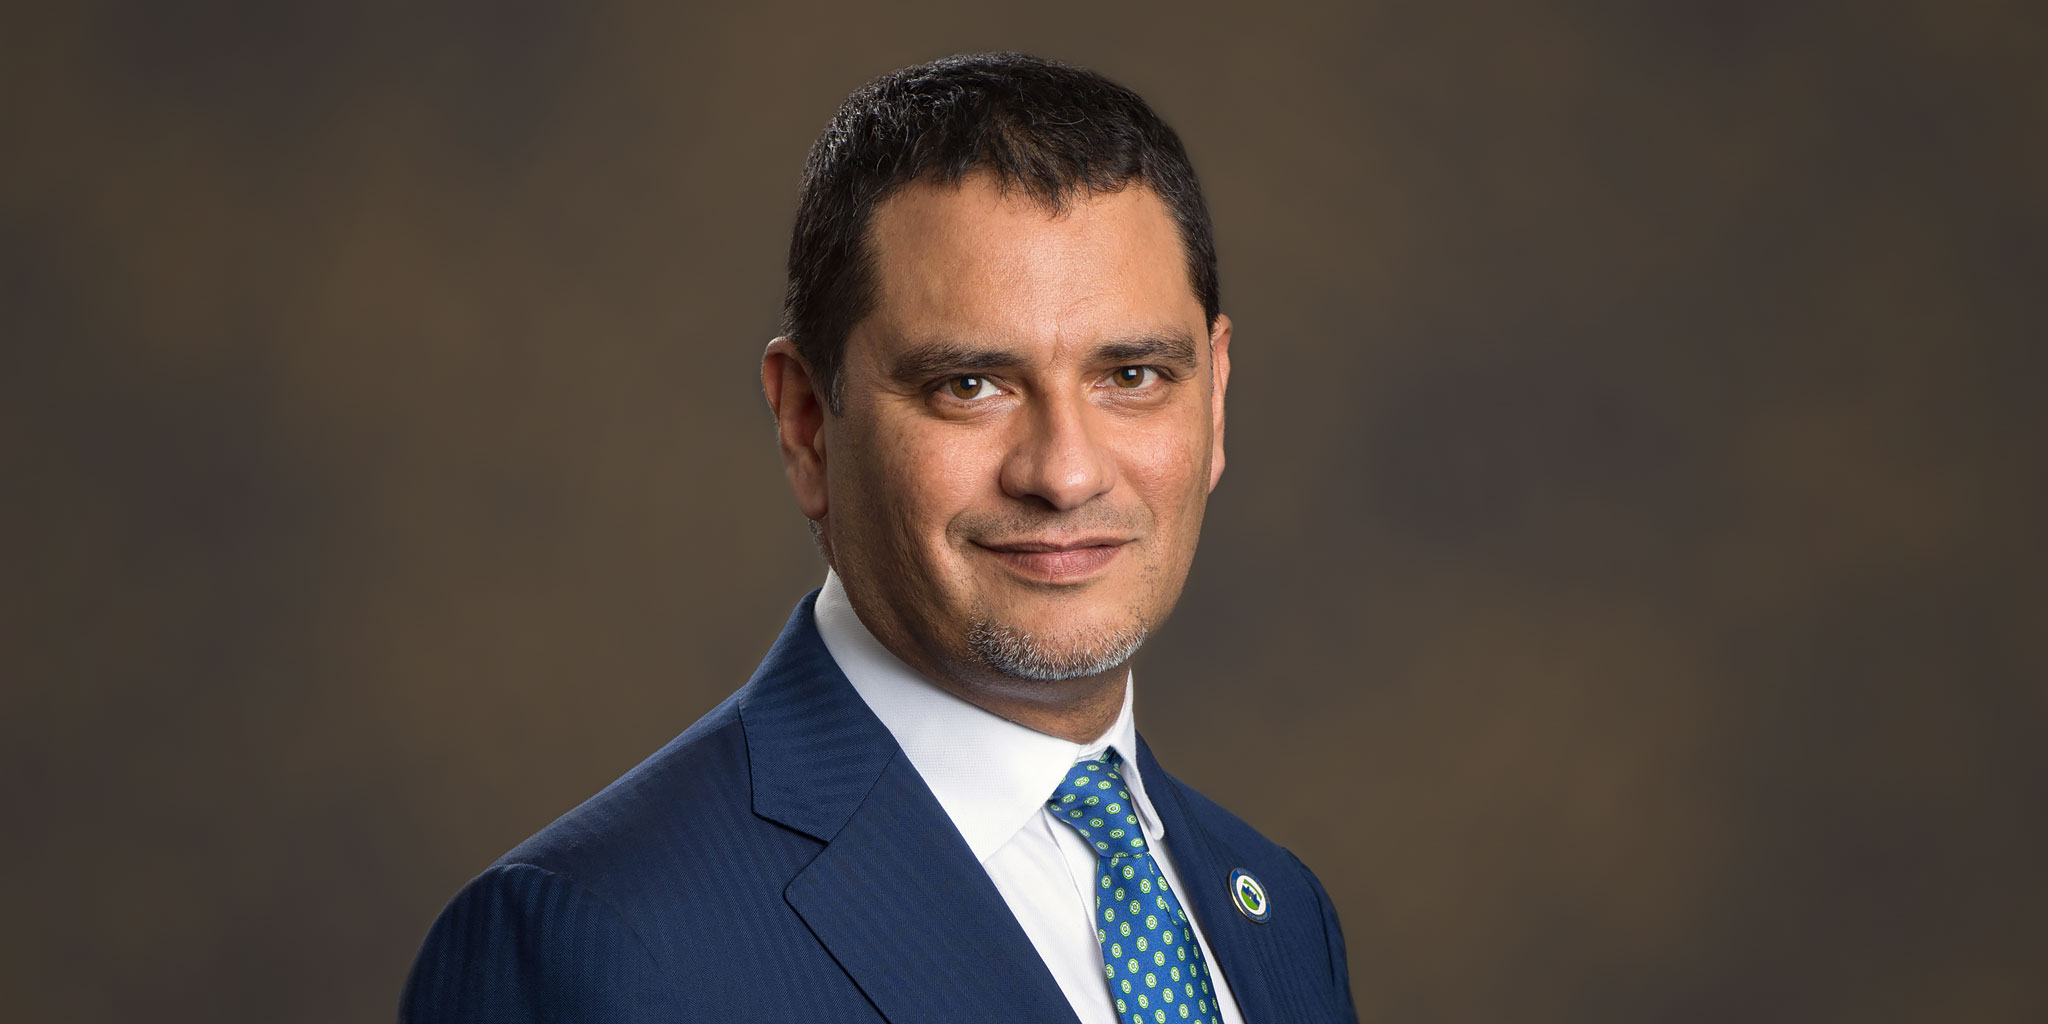 Photo of President Jose Luis Cruz linking to the